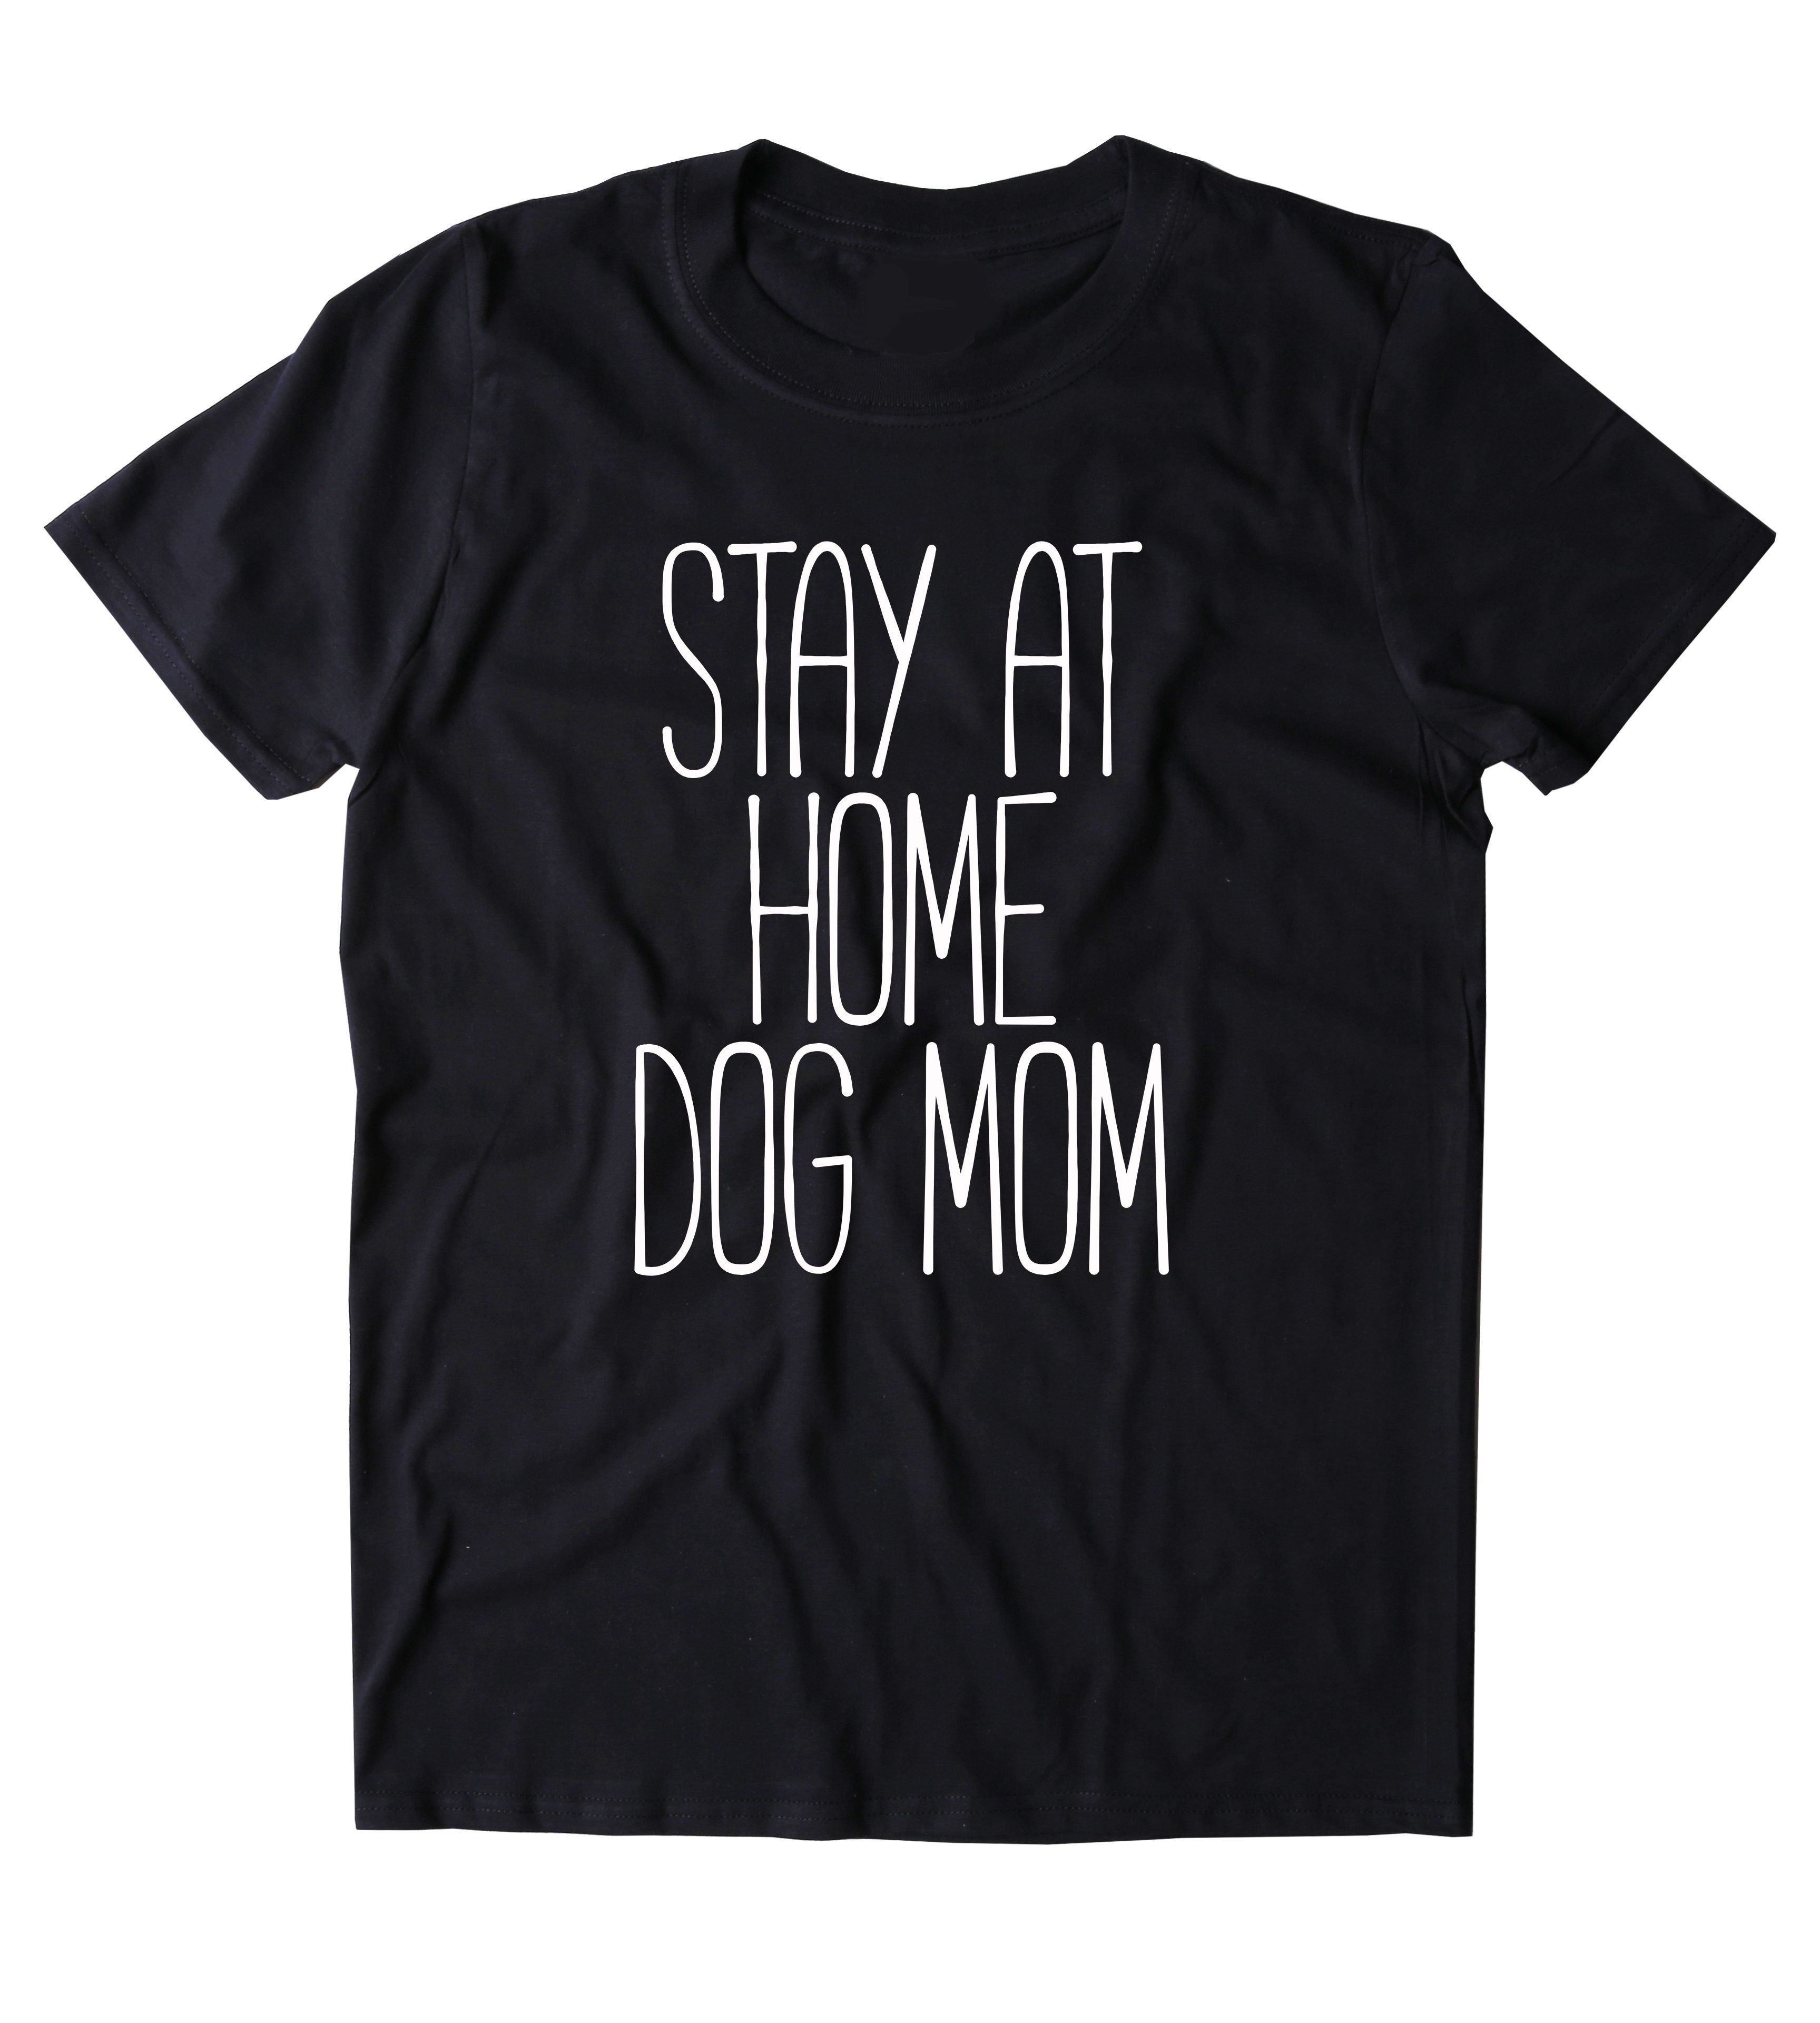 2d1f4feabd Stay At Home Dog Mom Shirt Funny Dog Owner Animal Lover Puppy Clothing  Tumblr T-shirt